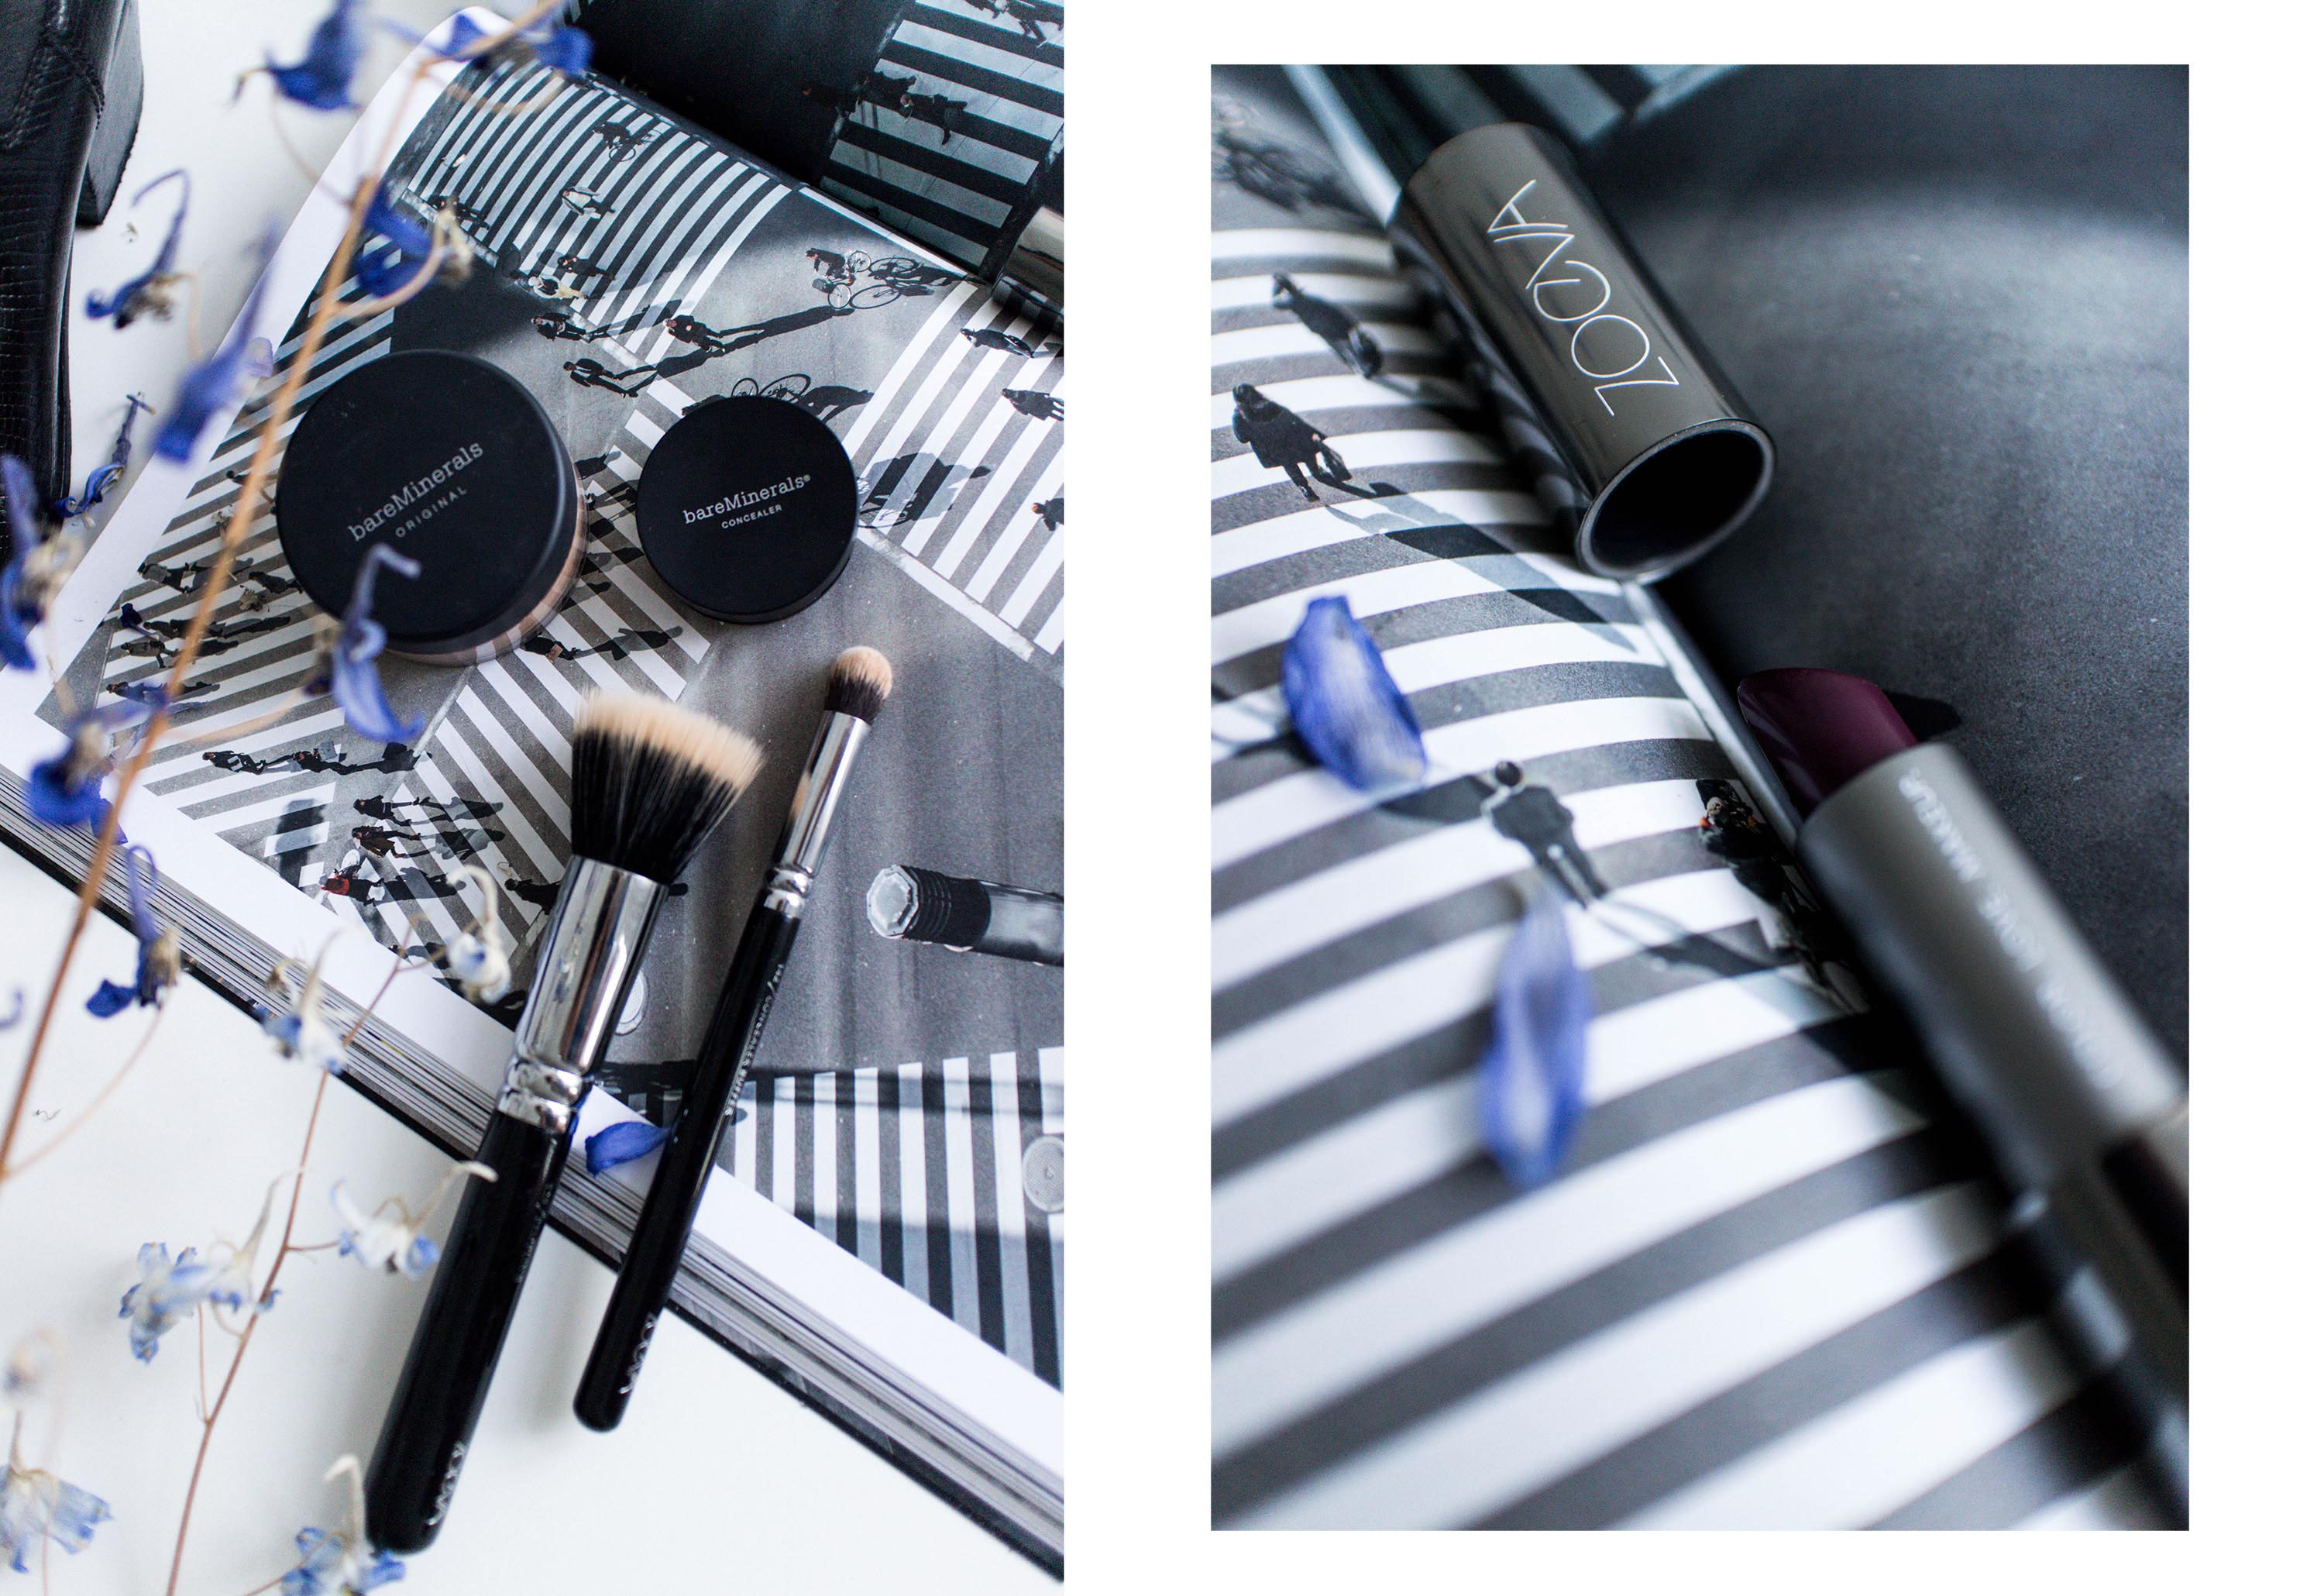 IHEARTALICE – Fashion and Travel Blog from Berlin/Germany by Alice M. Huynh: bareMinerals Concealer & Powder, ZOEVA Brushes & Lipstick